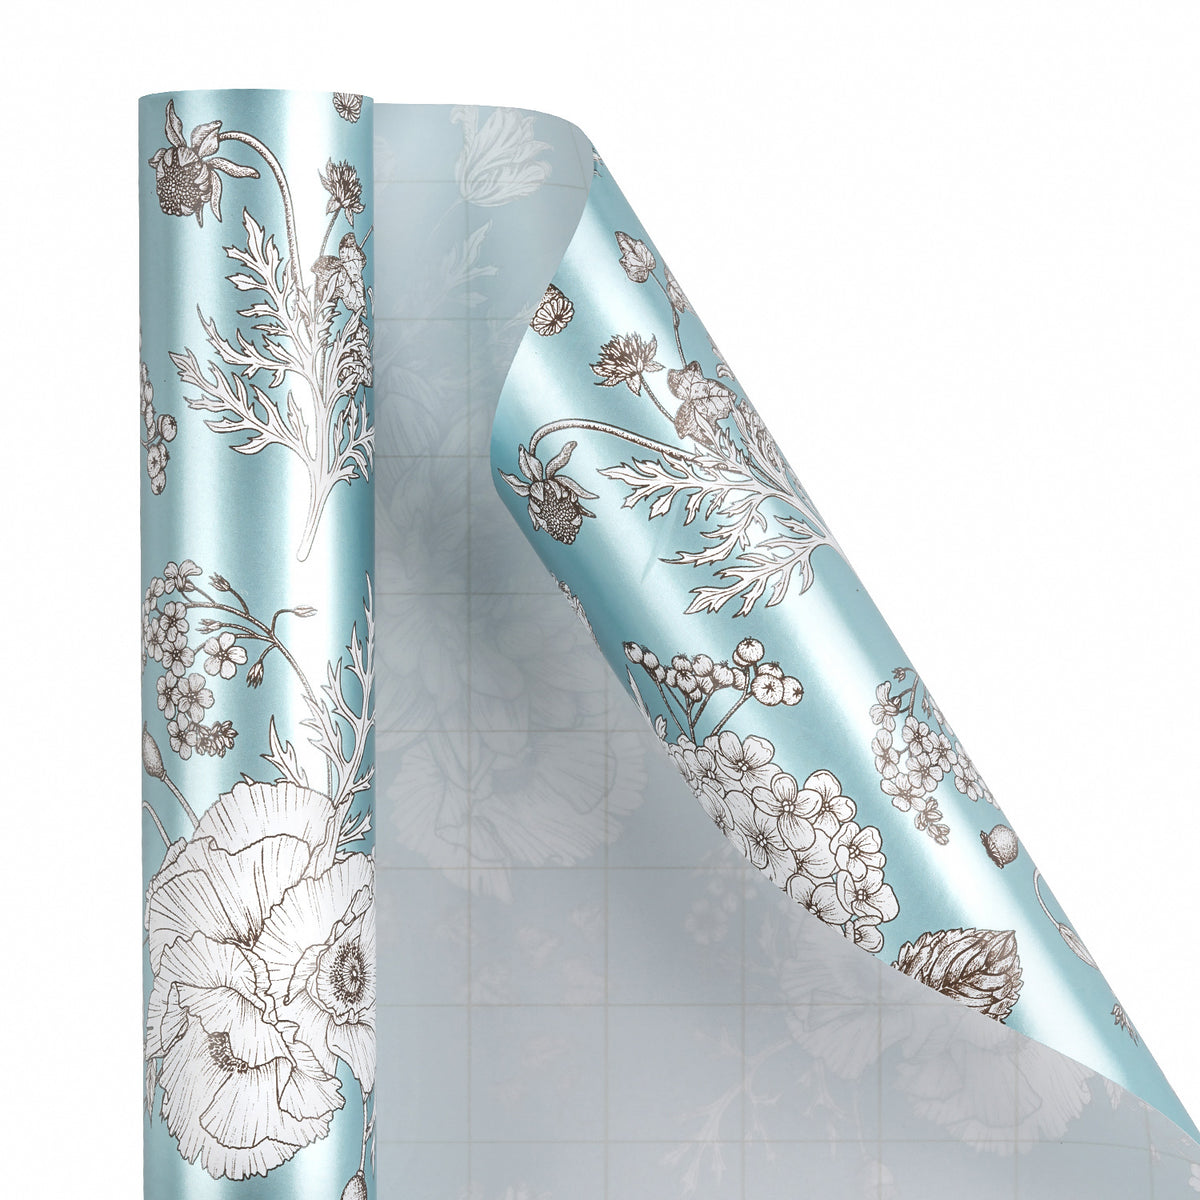 Wrapaholic-Vintage-Floral- Printed-on-Blue Pearlized-Pape-Gift-Wrapping-Paper-Roll-2